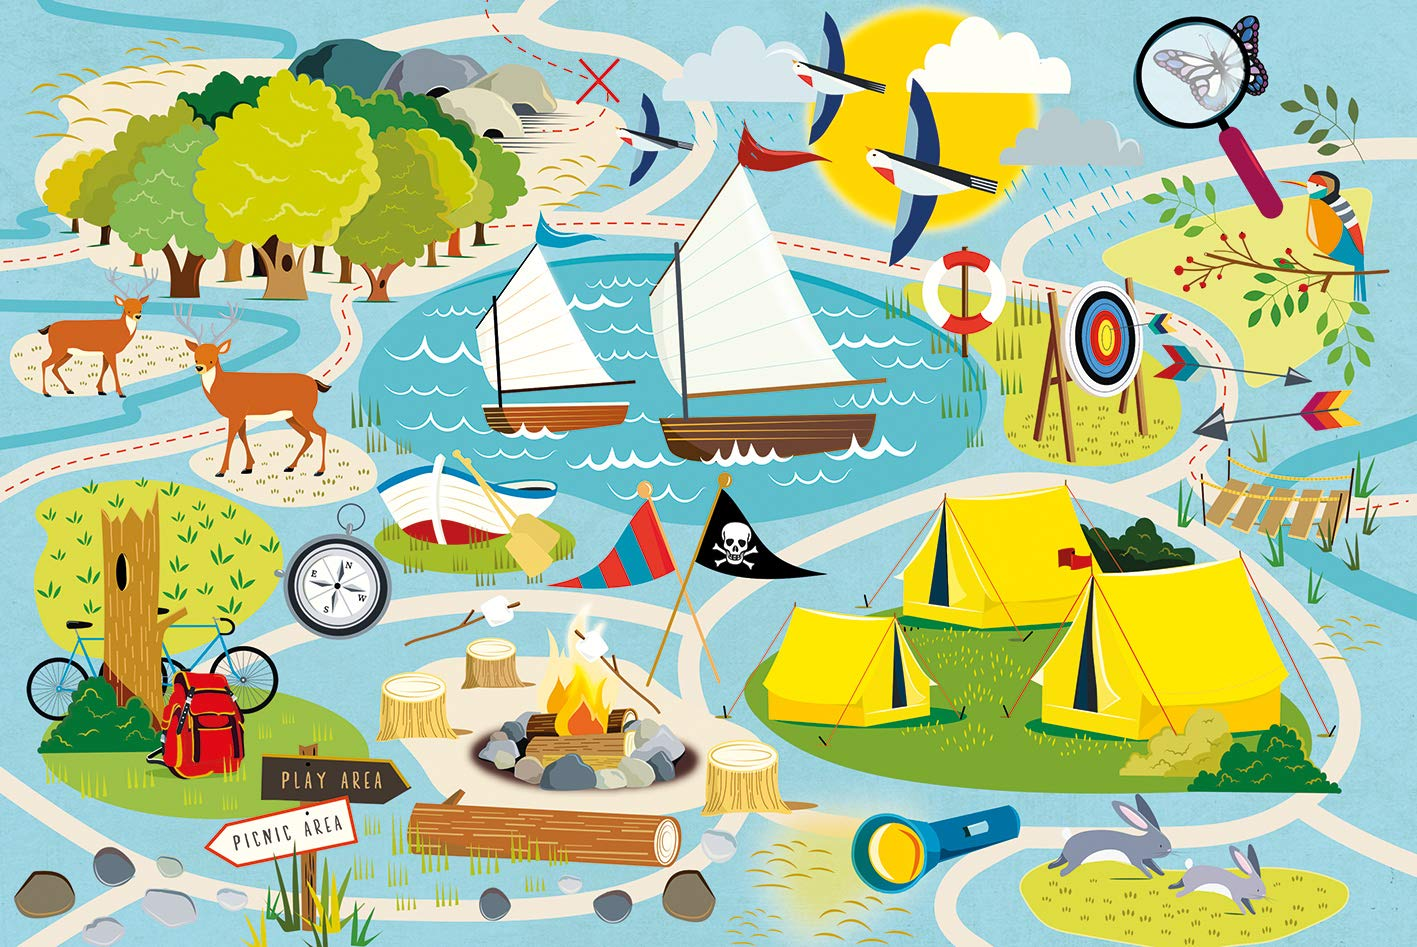 gibsons-camp-gibsons-36-teile-puzzle-gibsons-g1031